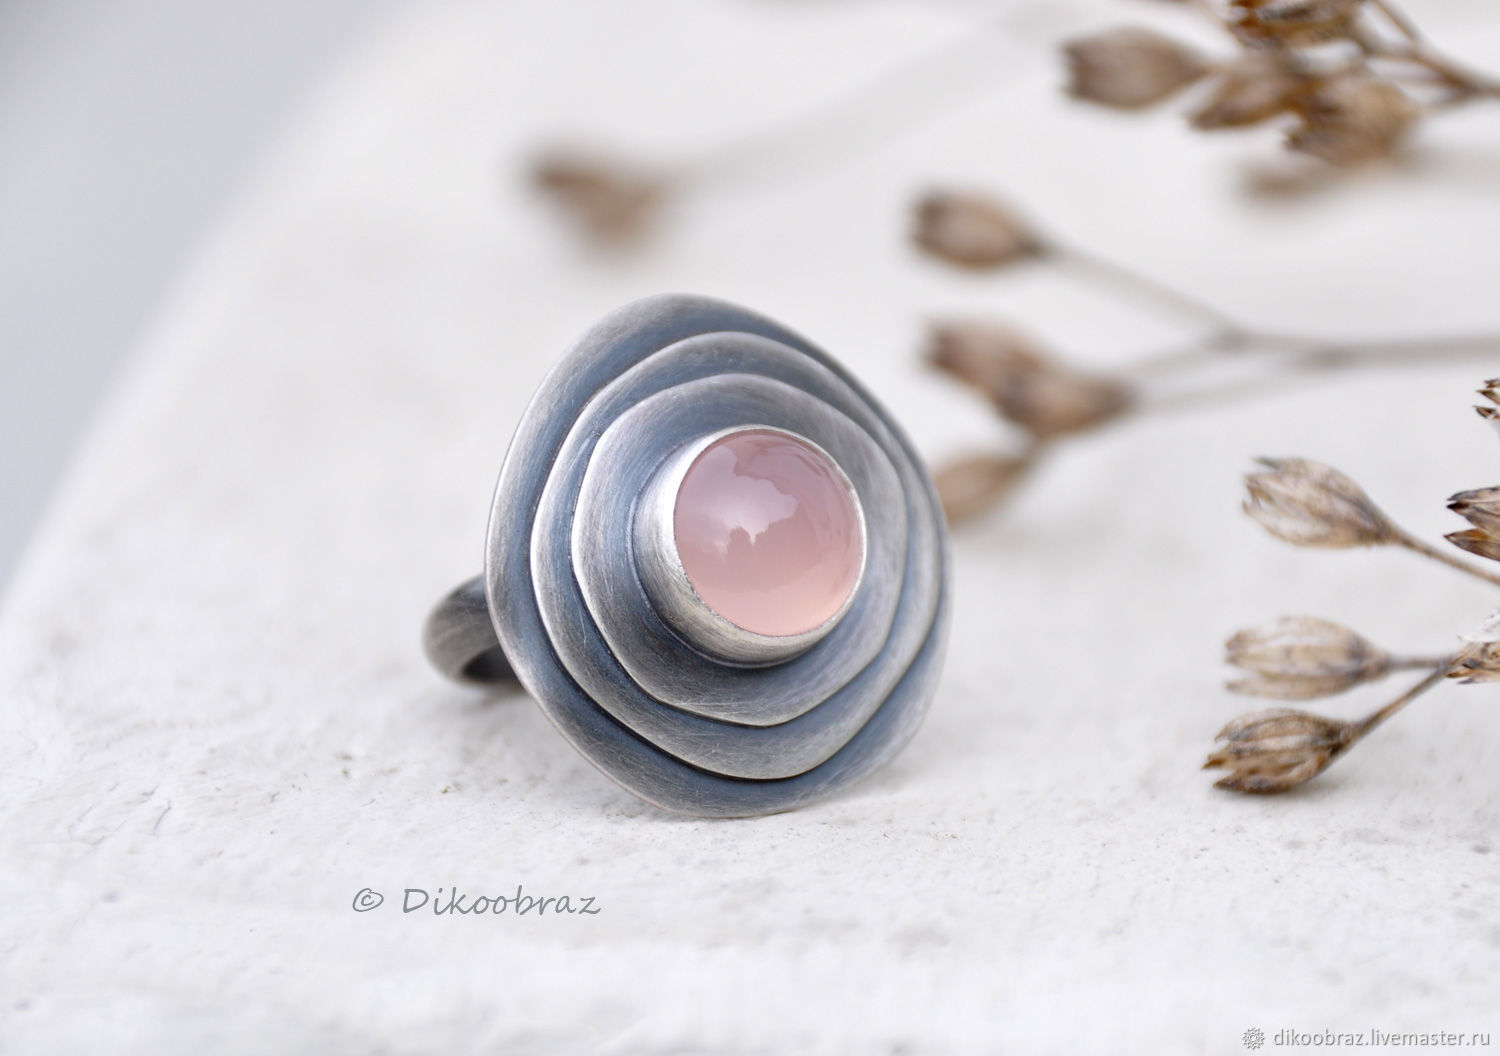 Dusty rose ring (925 silver, chalcedony), Rings, Moscow,  Фото №1